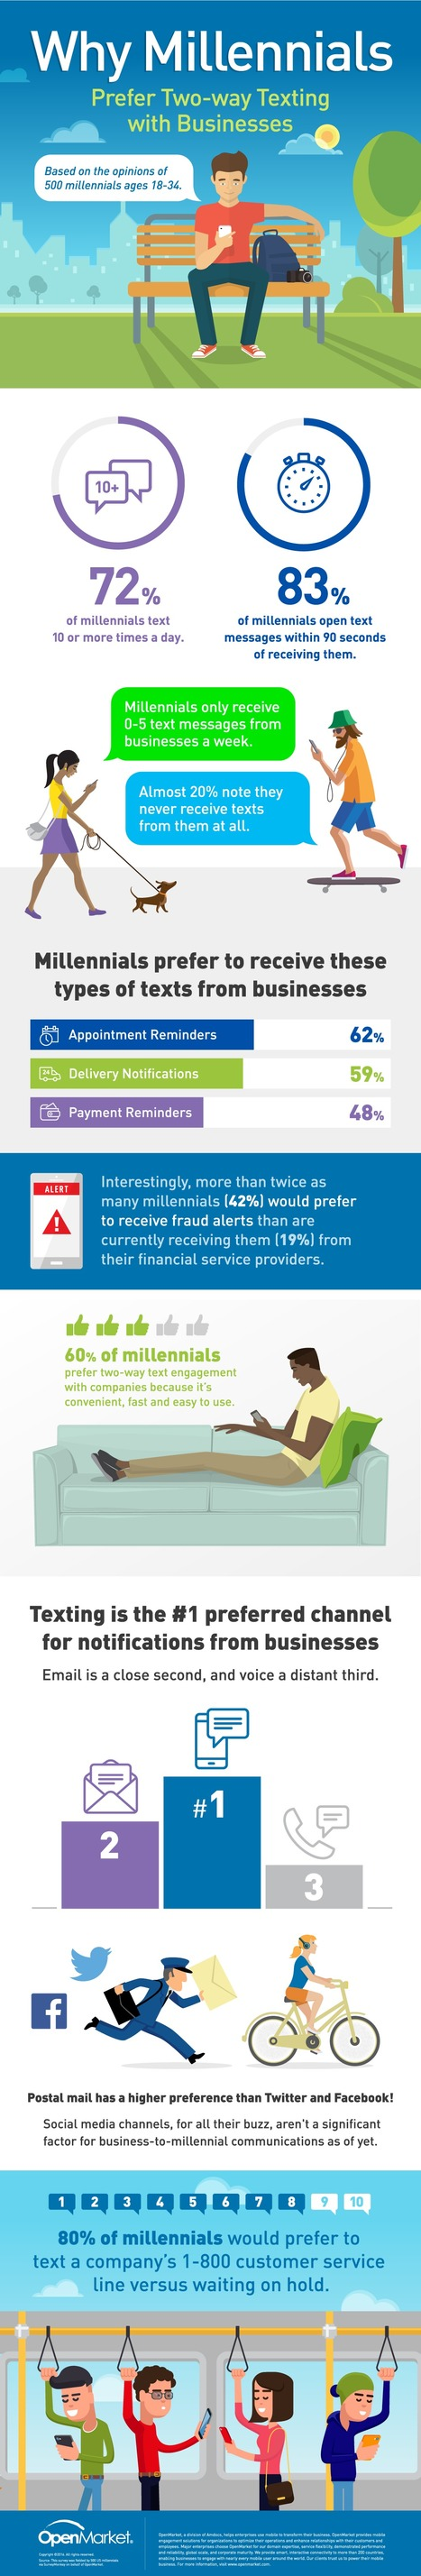 Why Millennials Prefer Two-Way Texting with Businesses #Infographic | Information Technology & Social Media News | Scoop.it